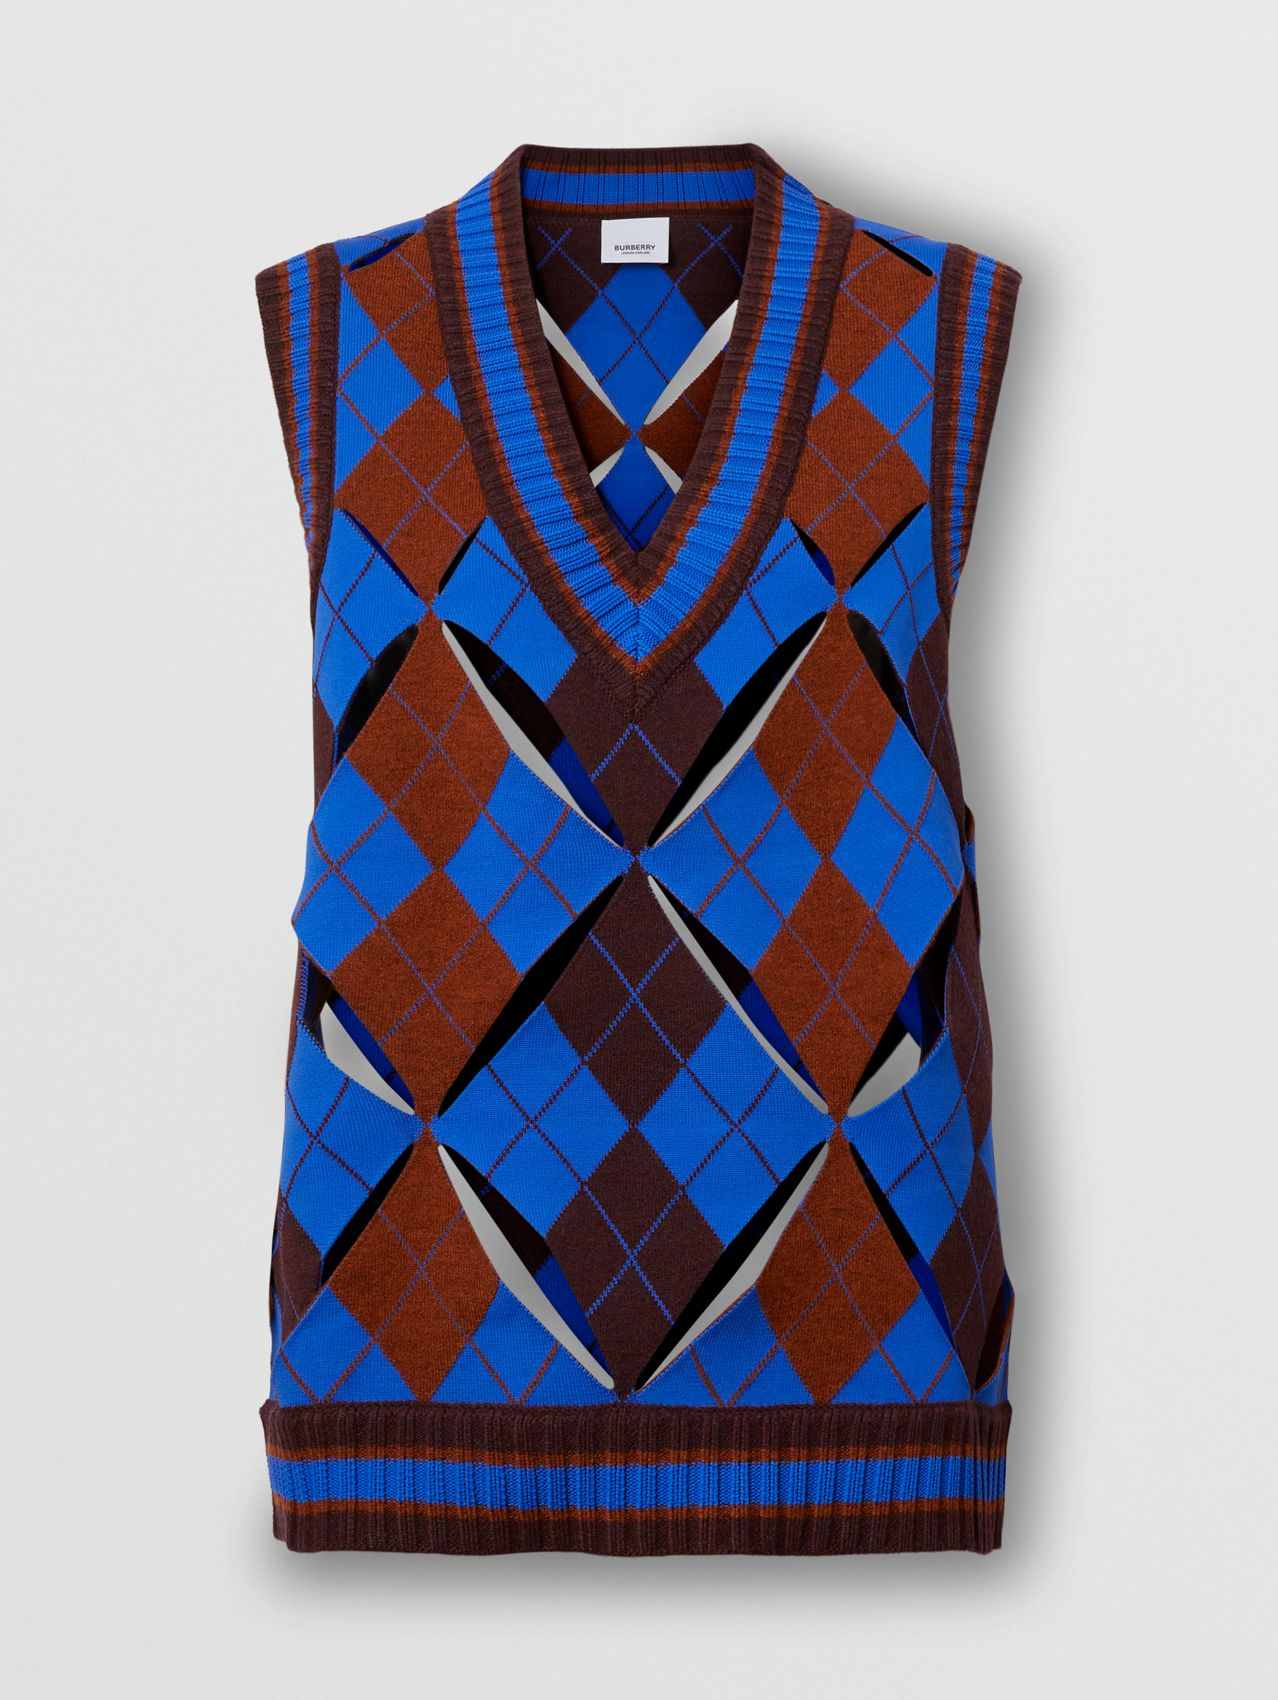 Cut-out Detail Argyle Technical Wool Jacquard Vest in Bright Blue